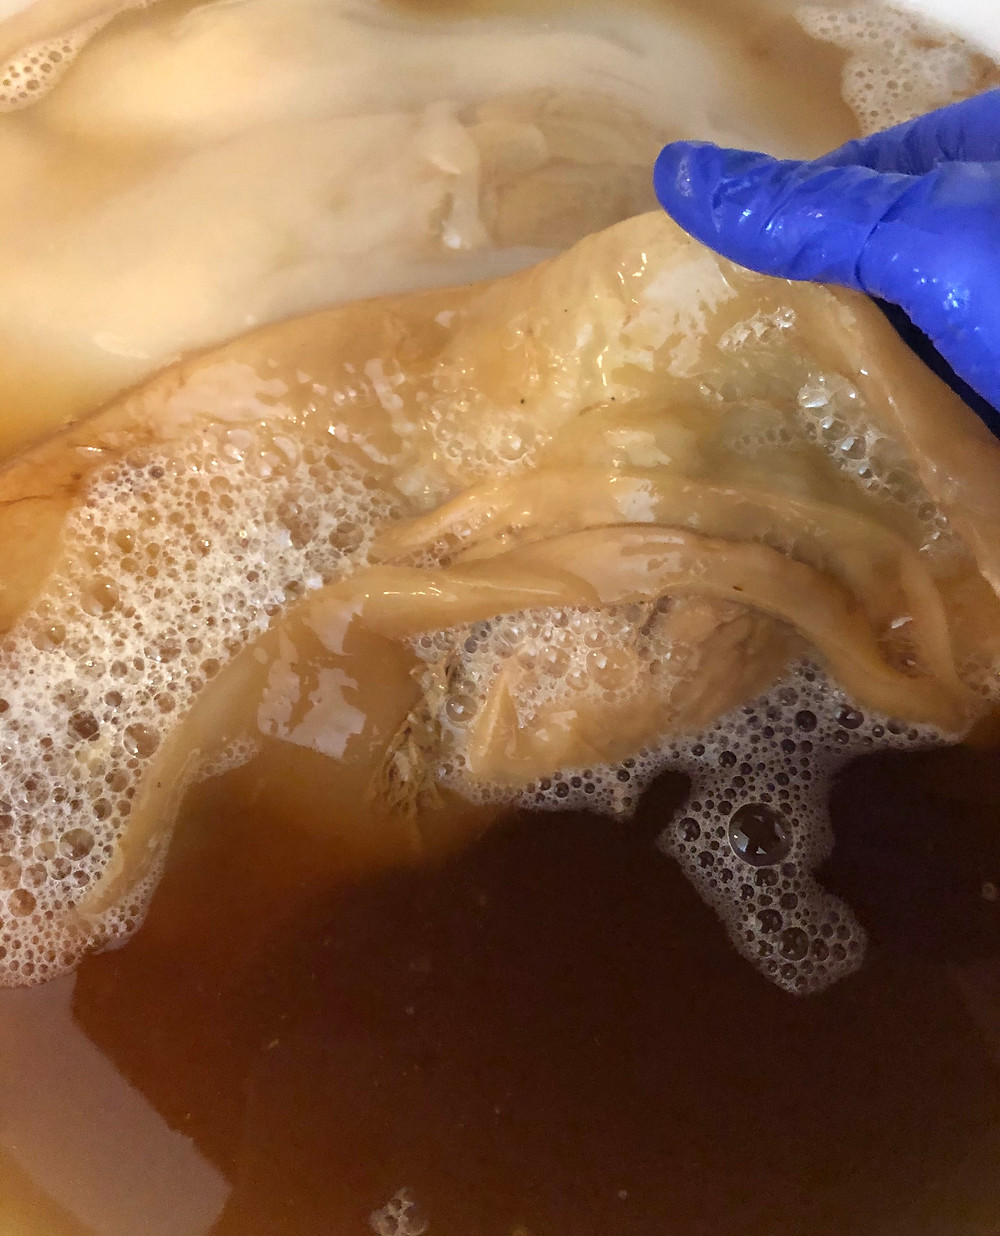 layers of the scoby, looking at healthy scoby growth and development, SCOBYs are used for making kombucha